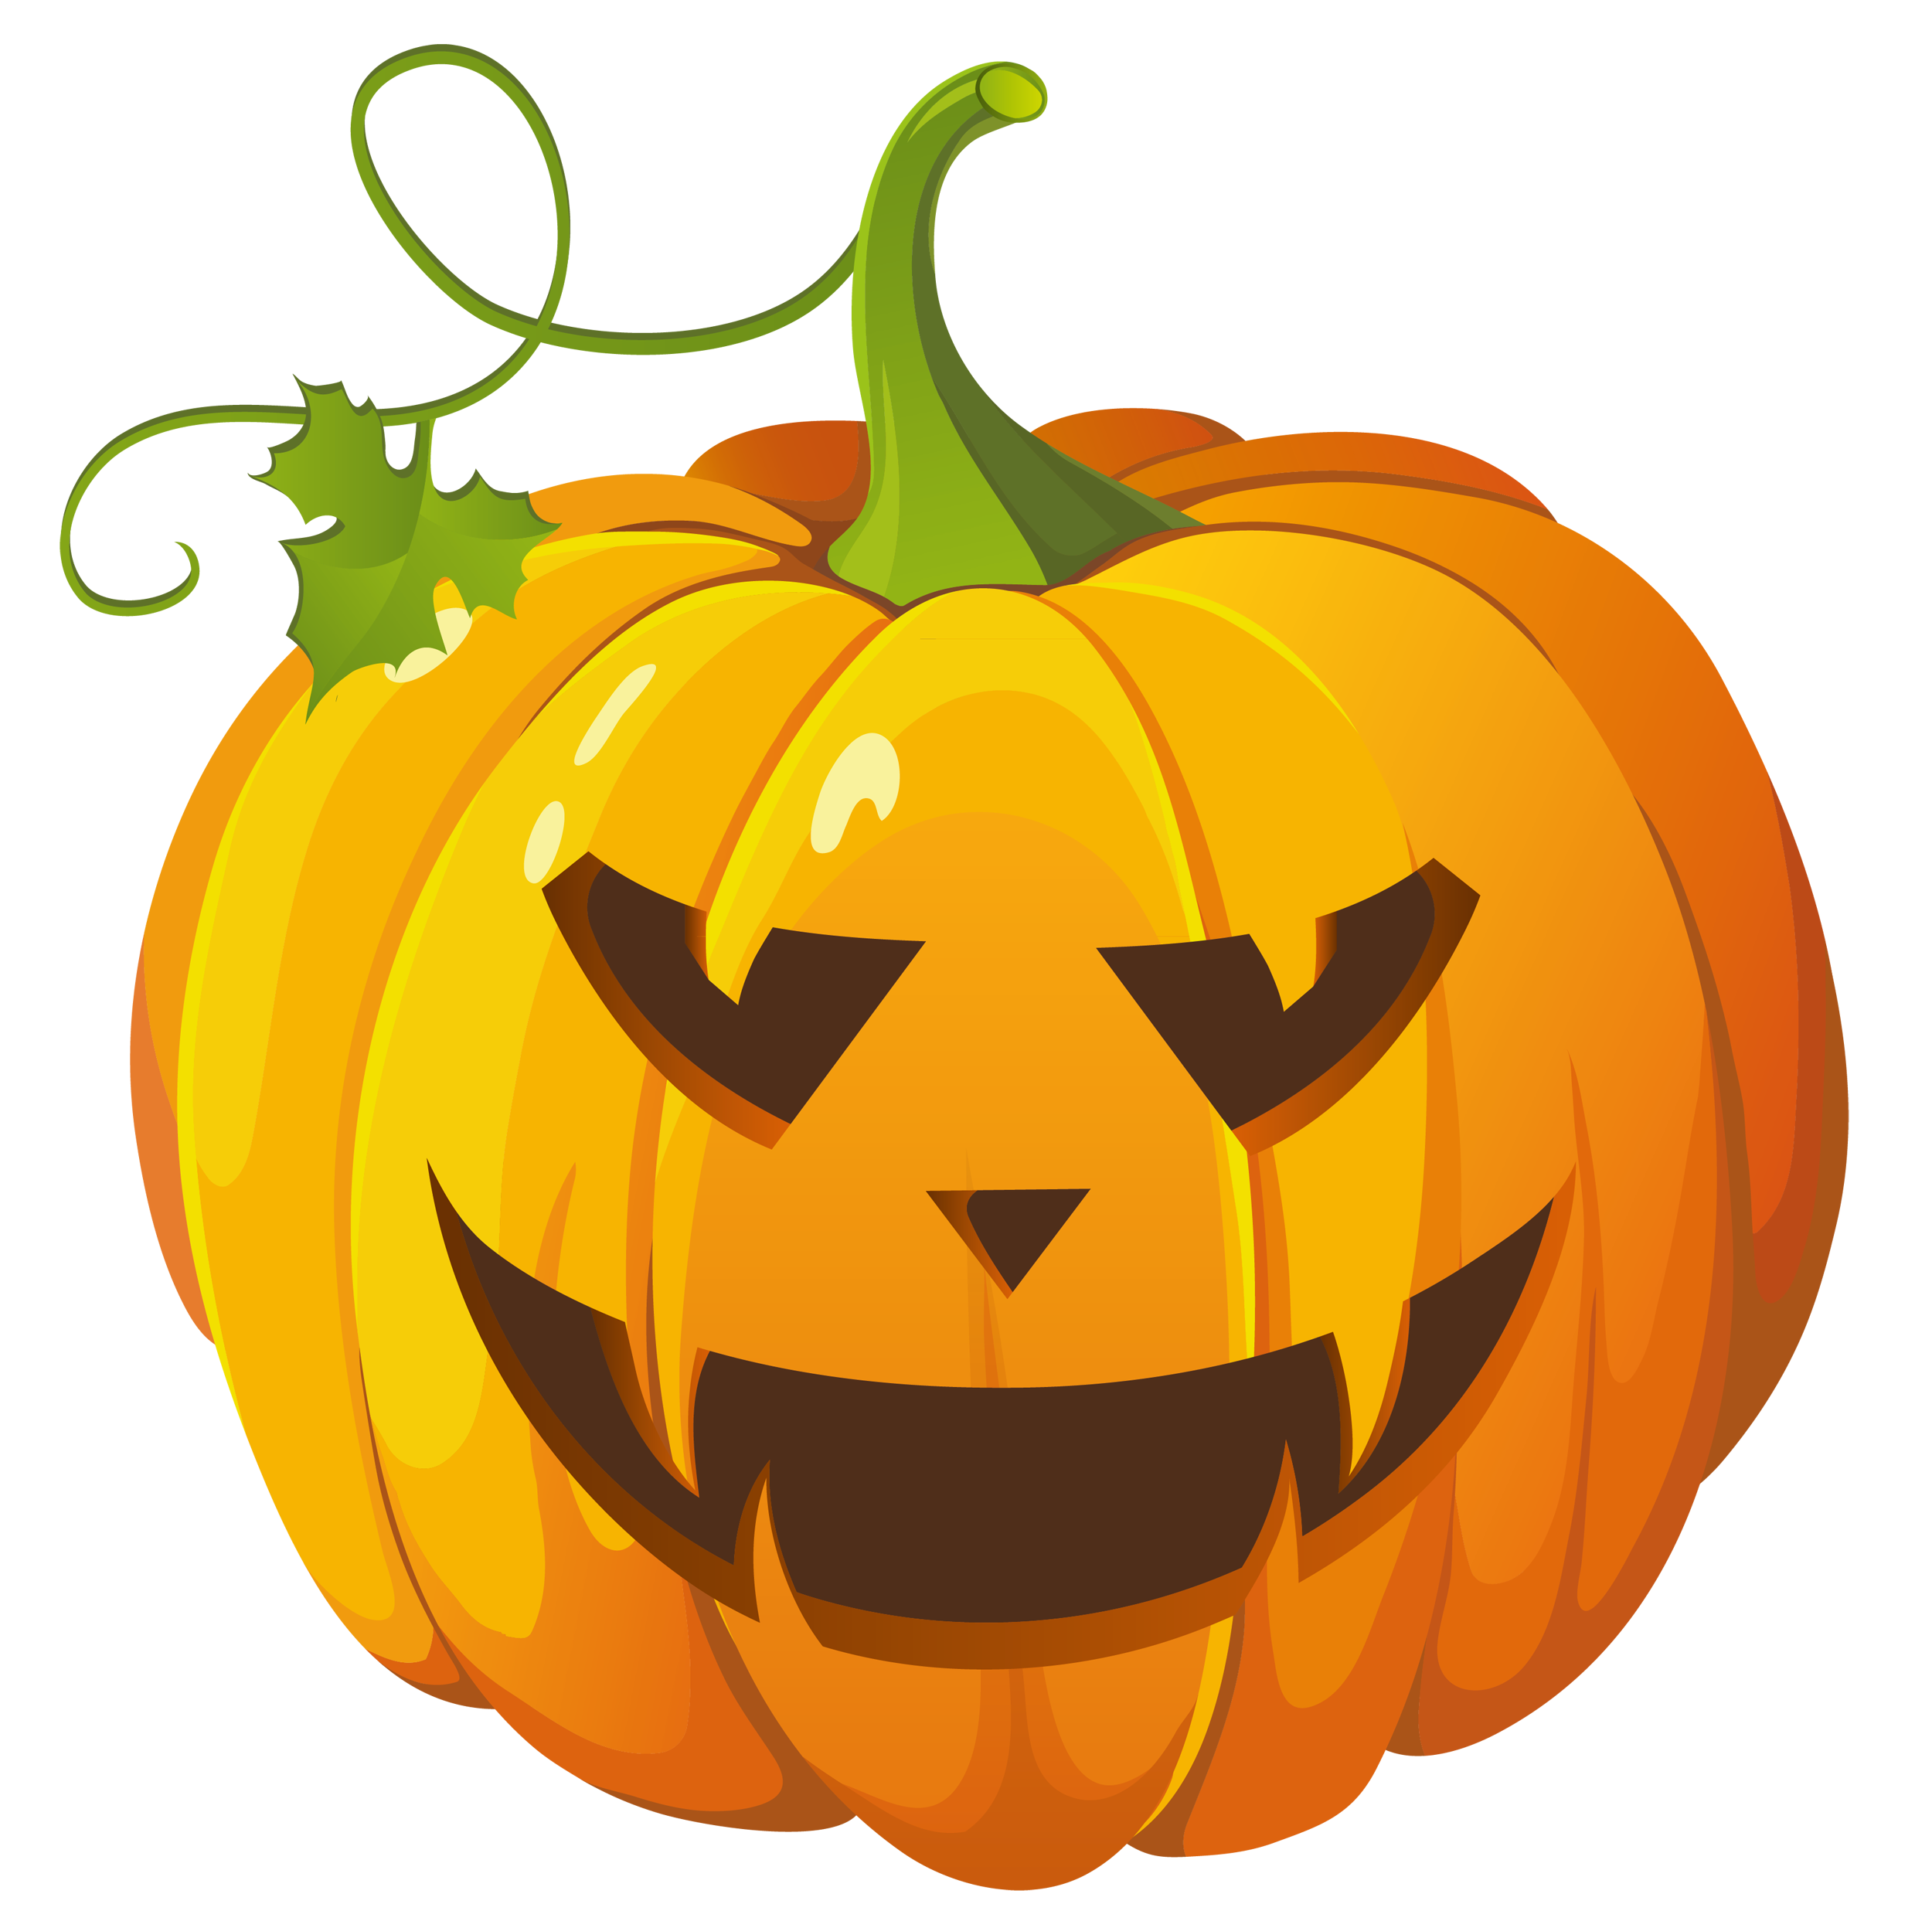 Pumpkin Png – Includes special layers and smart objects for your creative works.